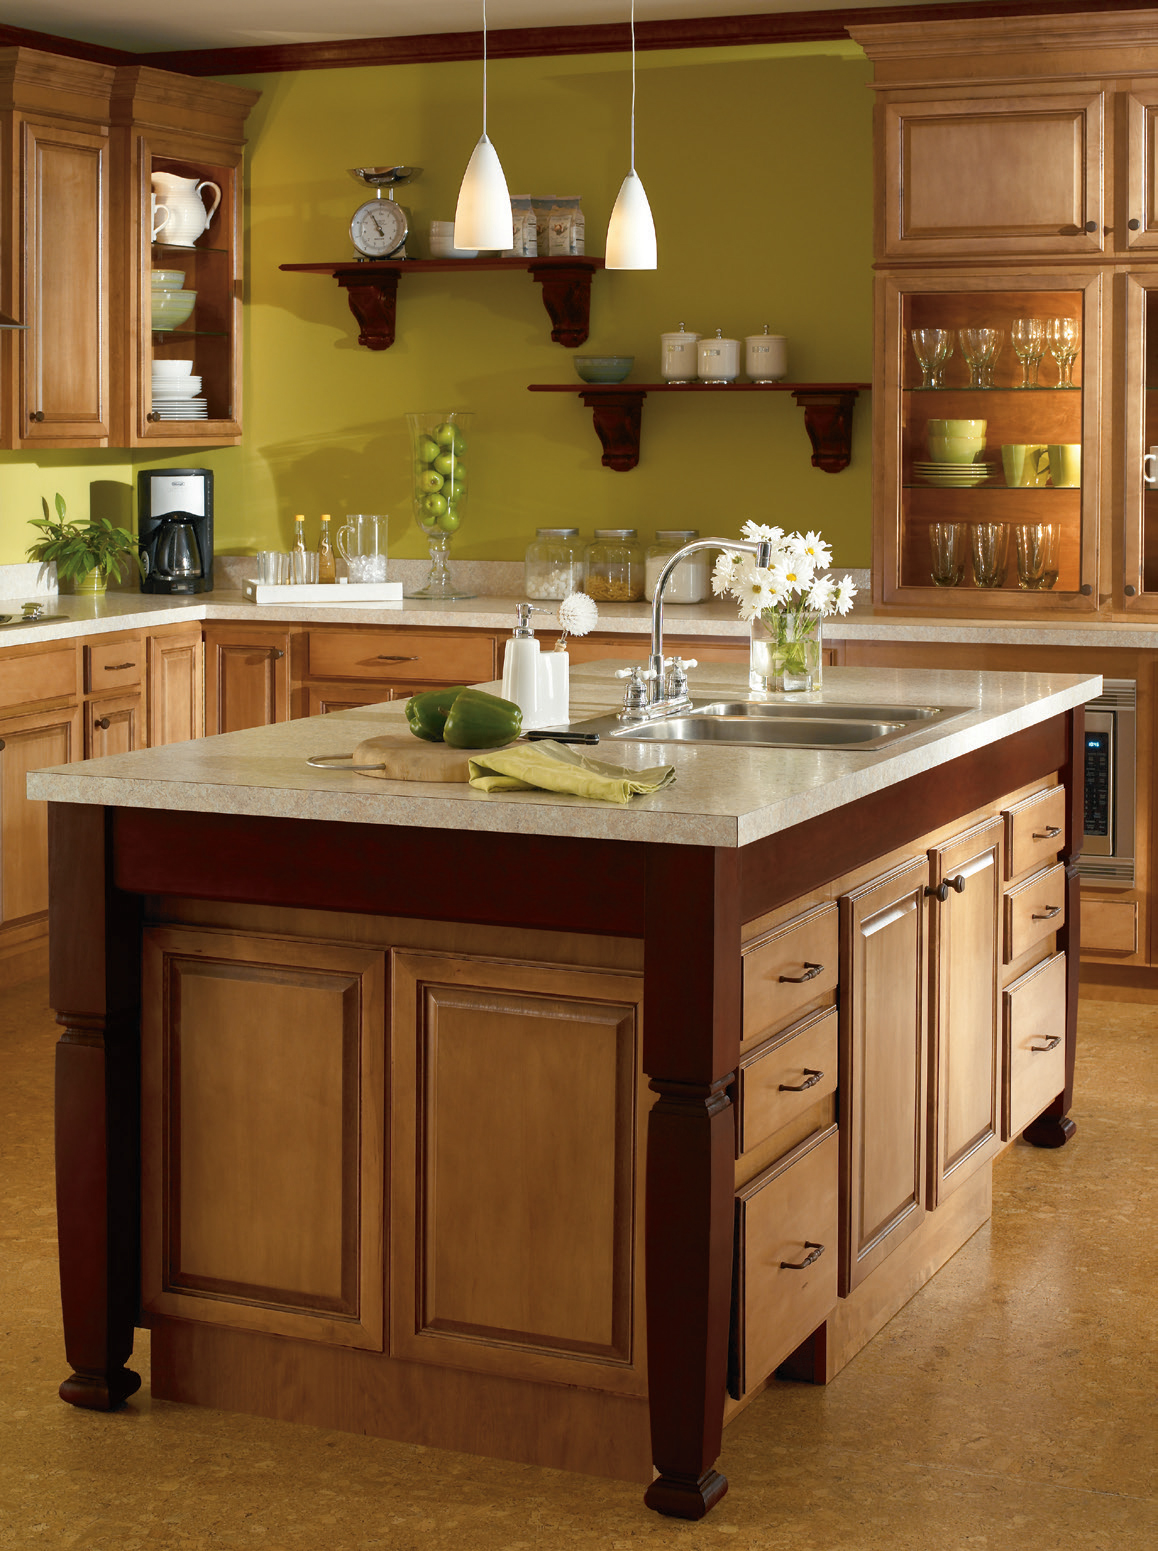 summit kitchens curved kitchen island aristokraft – woodsman_kitchens & floors blog